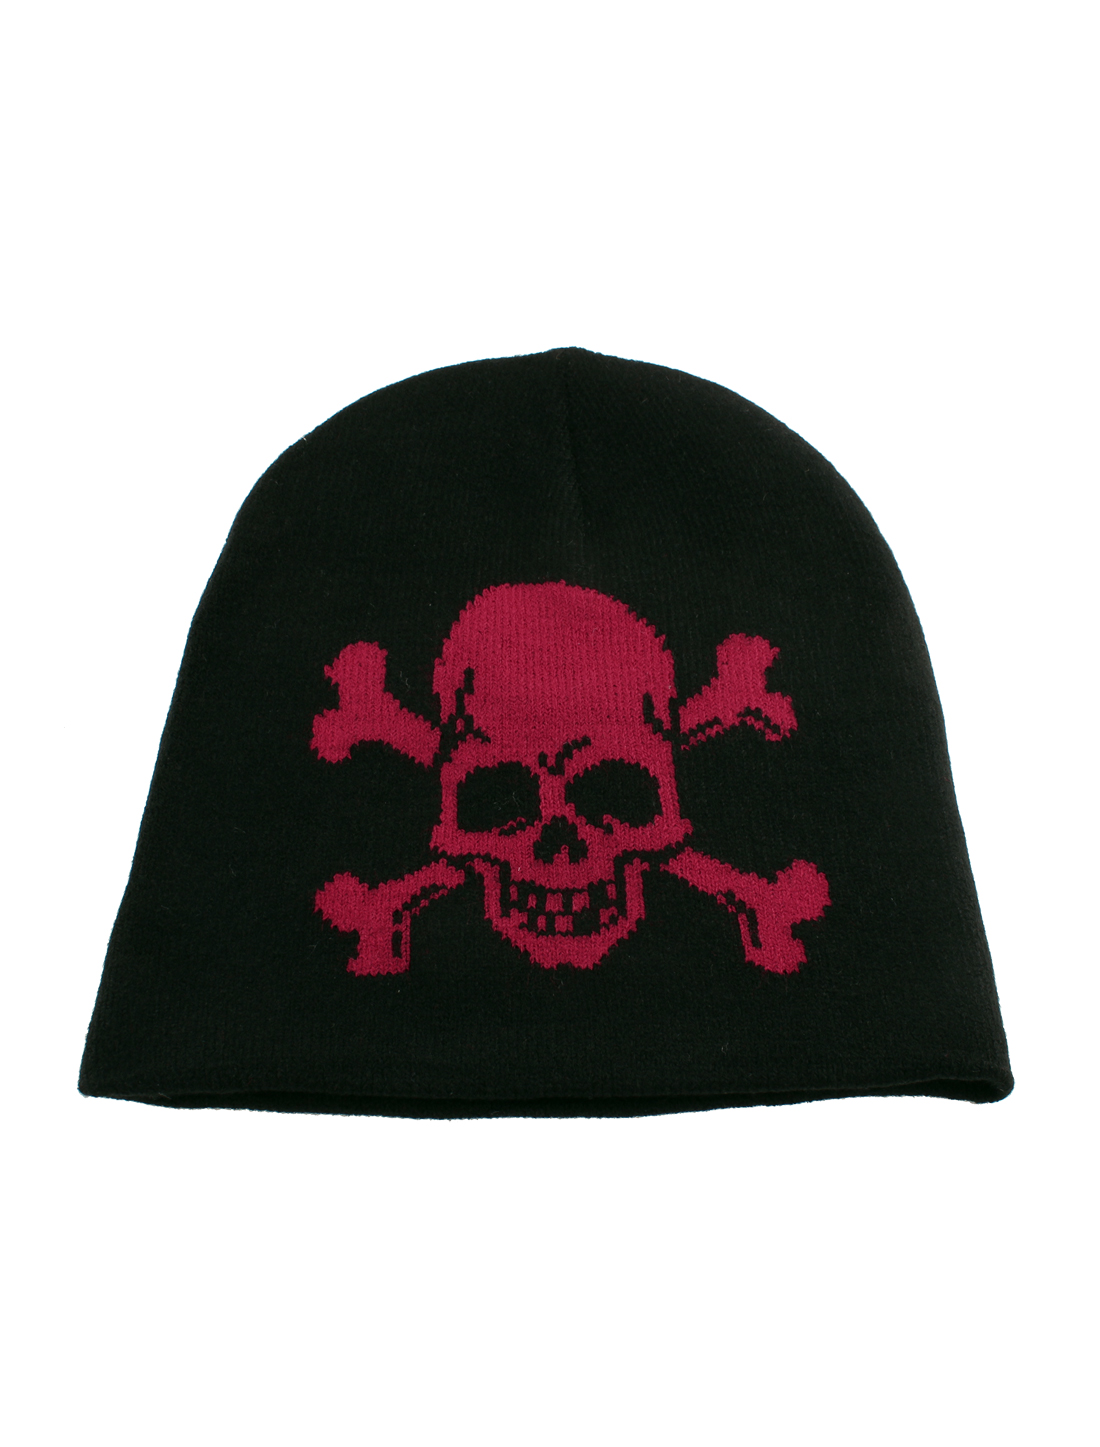 Men Women Skull Printed Winter Warm Knitted Stretchy Beanie Cap Hat Black Red